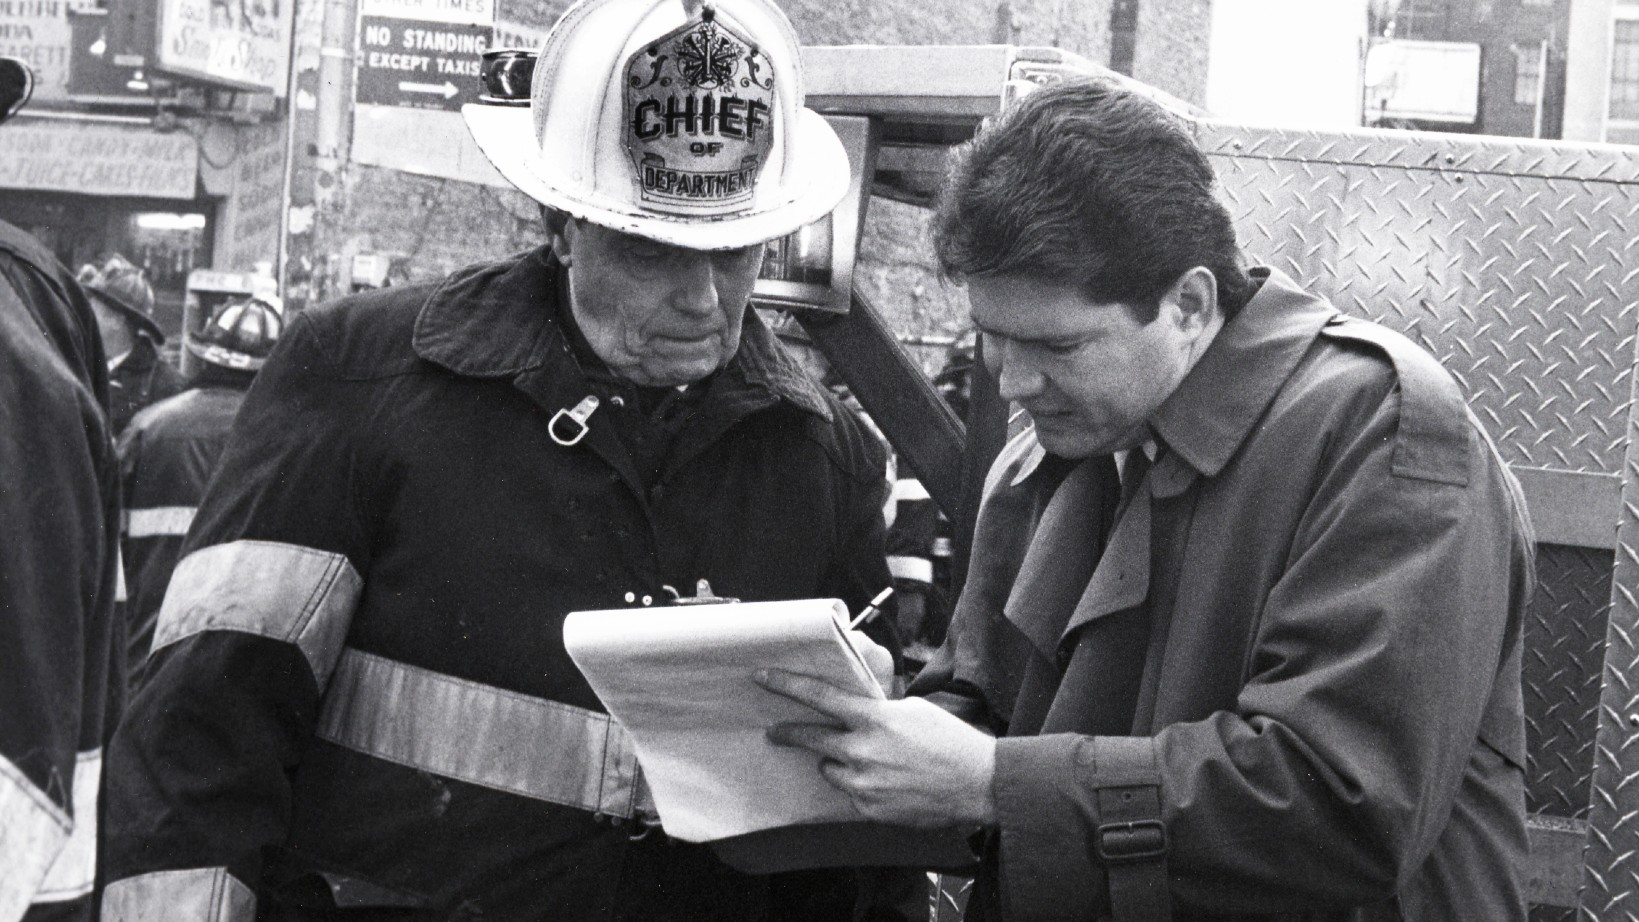 A fireman in chief helmet and fire jacket looks at notepad a man in trenchcoat holds between them on a street with hoses on it.